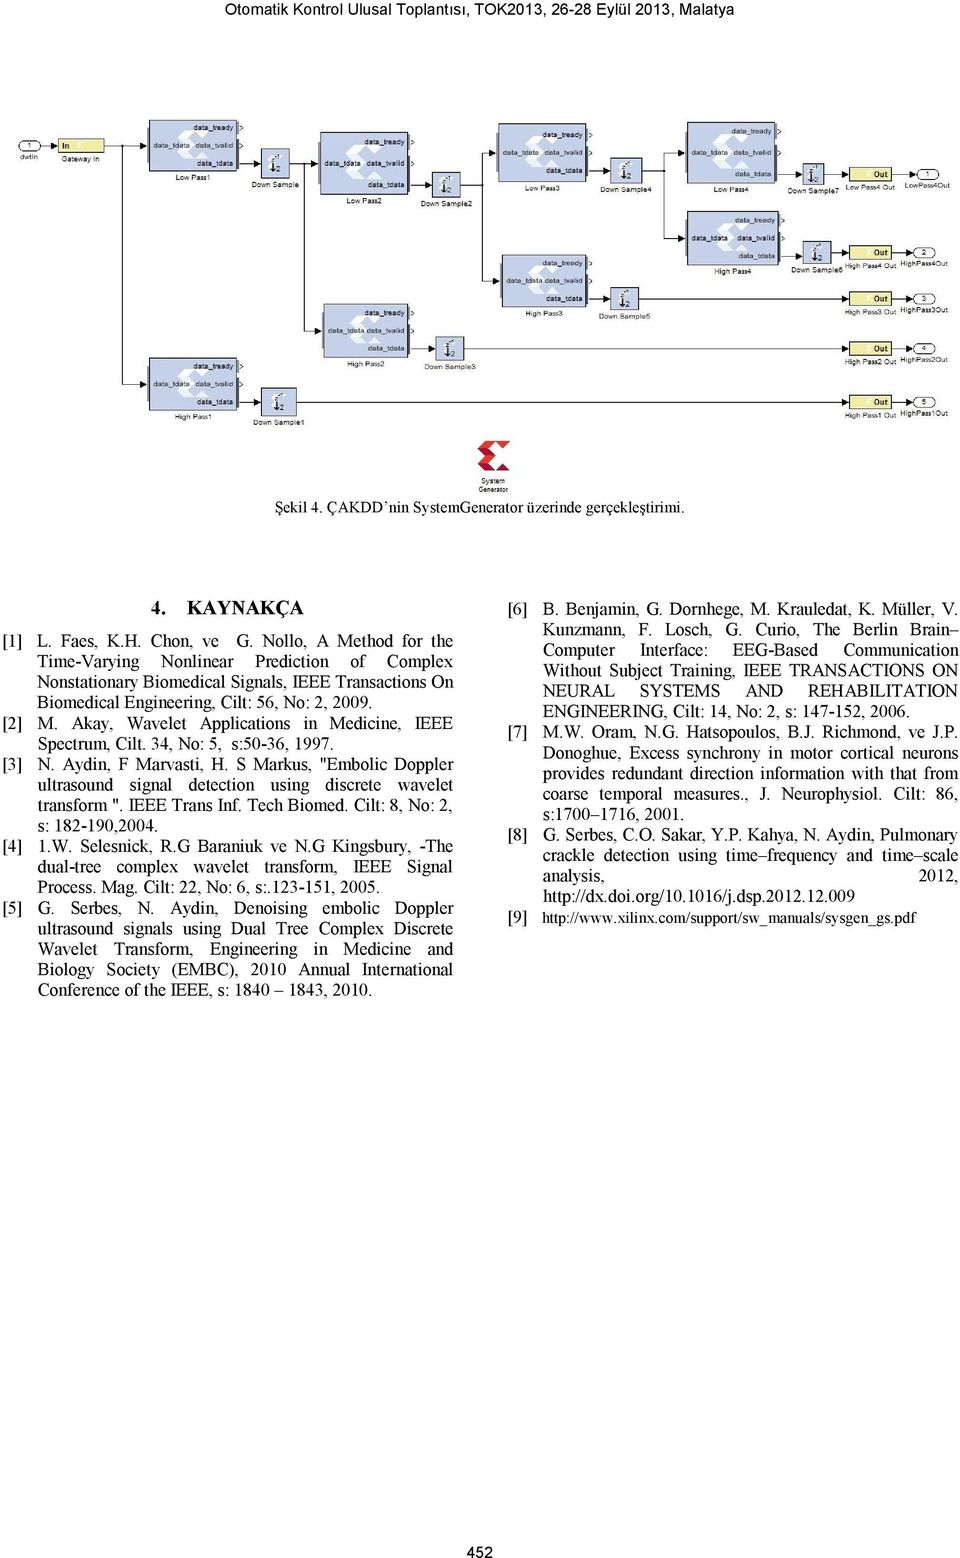 Akay, Wavelet Applications in Medicine, IEEE Spectrum, Cilt. 34, No: 5, s:50-36, 1997. [3] N. Aydin, F Marvasti, H.